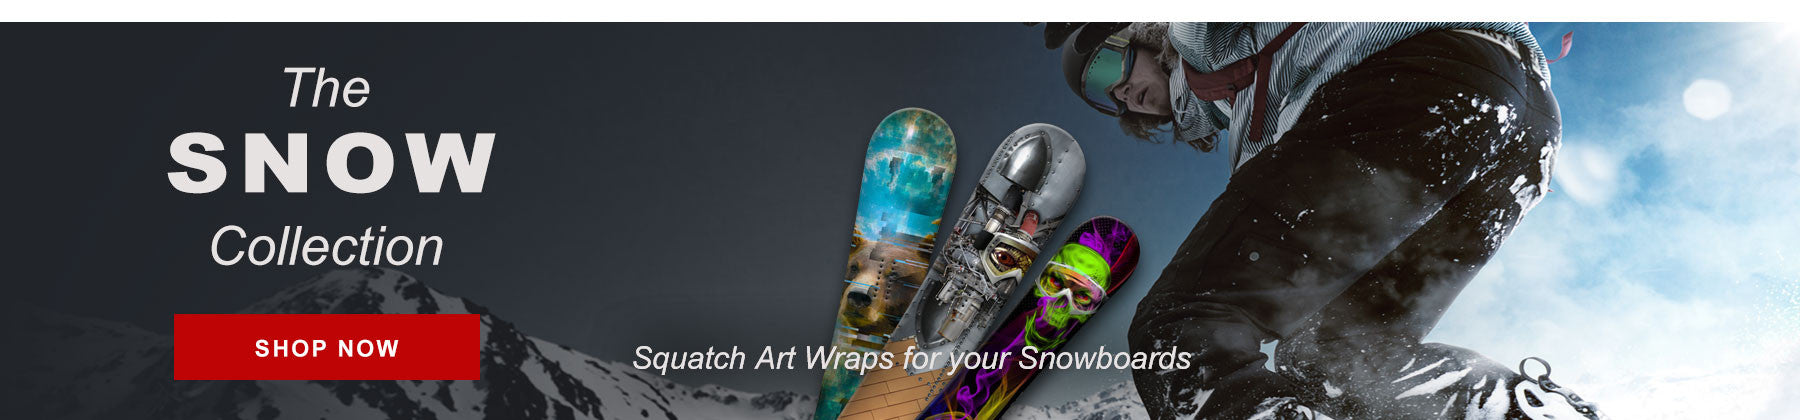 Inject style, creativity and fun into Snowboarding with Board Wraps from SQUATCH. From park laps to powder turns, Snowboarding and the people who do it truly create extreme art.   Free spirited in your approach to life and the sport you love.  From the very start your goal was to set yourself apart.  With Mt Baker, Whistler Blackcomb and Mammoth as your canvas, anything is possible.  Now strap in, it's time to ride!